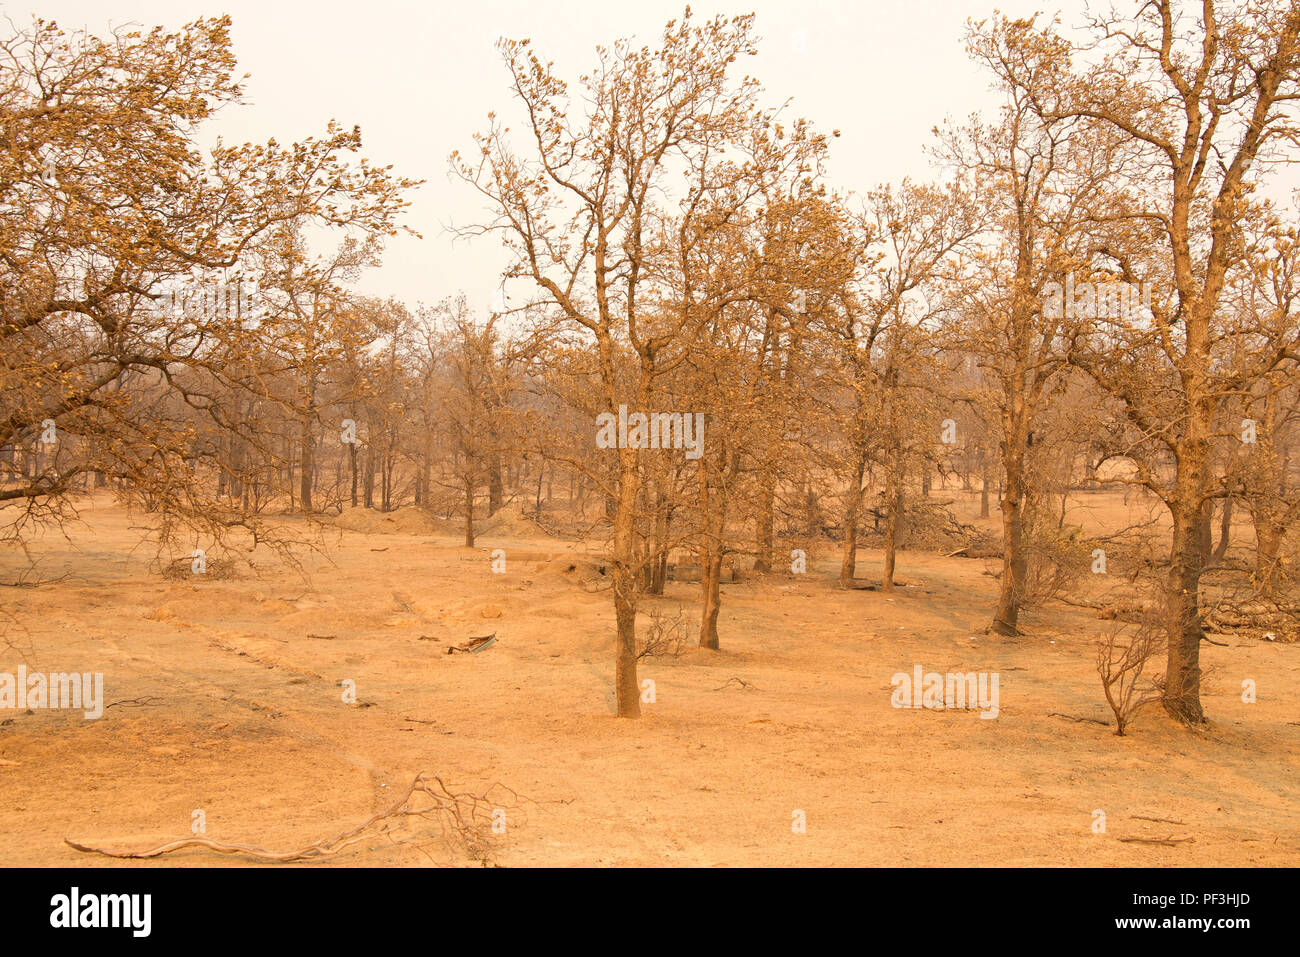 trees burned in the recent wildfire fire storm in Redding, California. Smoke and ash in the air as the fire continues to burn several miles away. - Stock Image